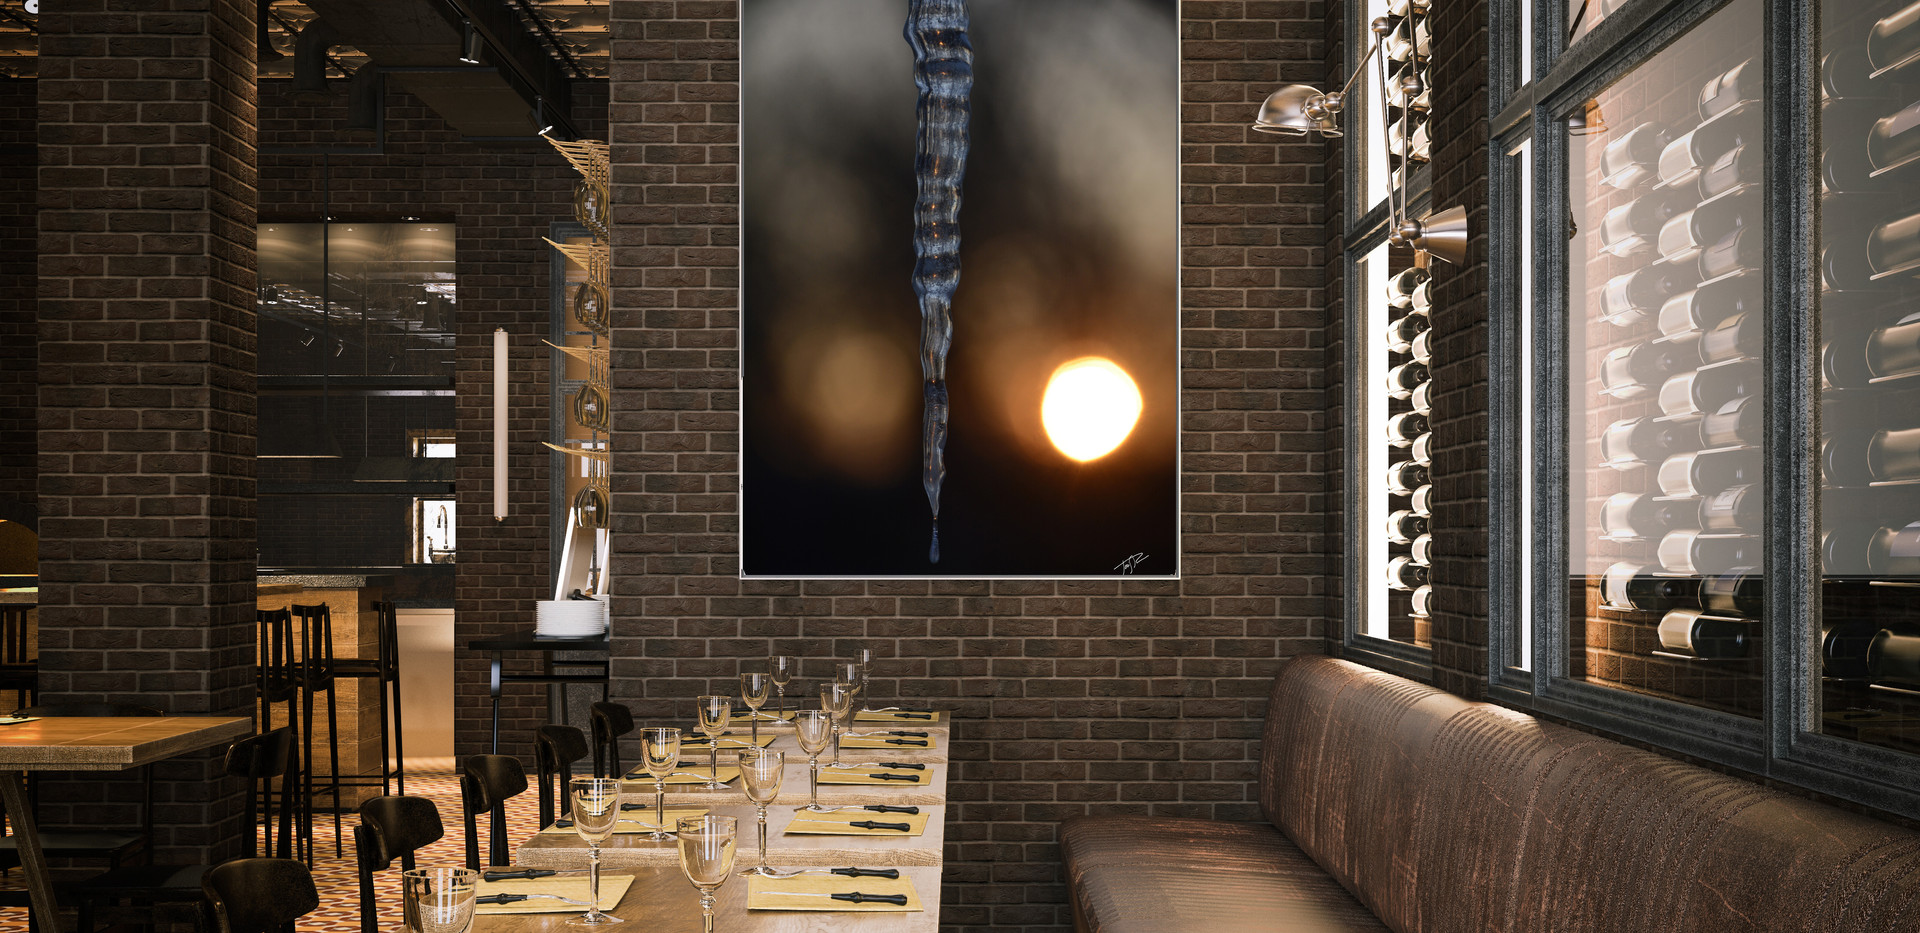 Dramatic Icicle in Restaurant.jpg